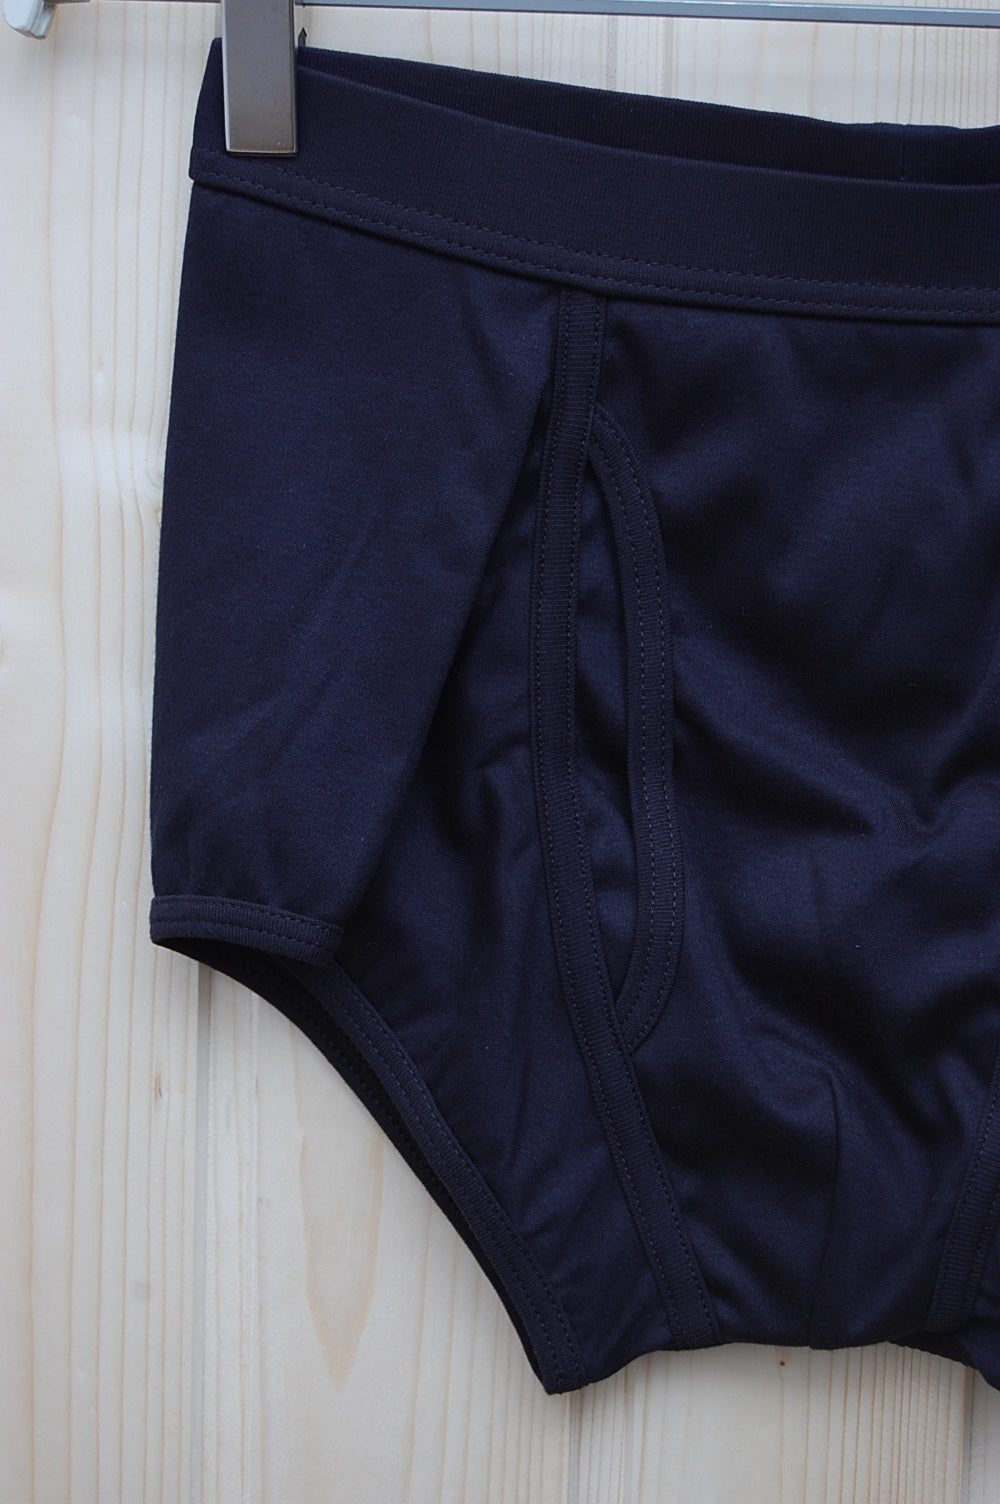 The White Briefs Elm Black